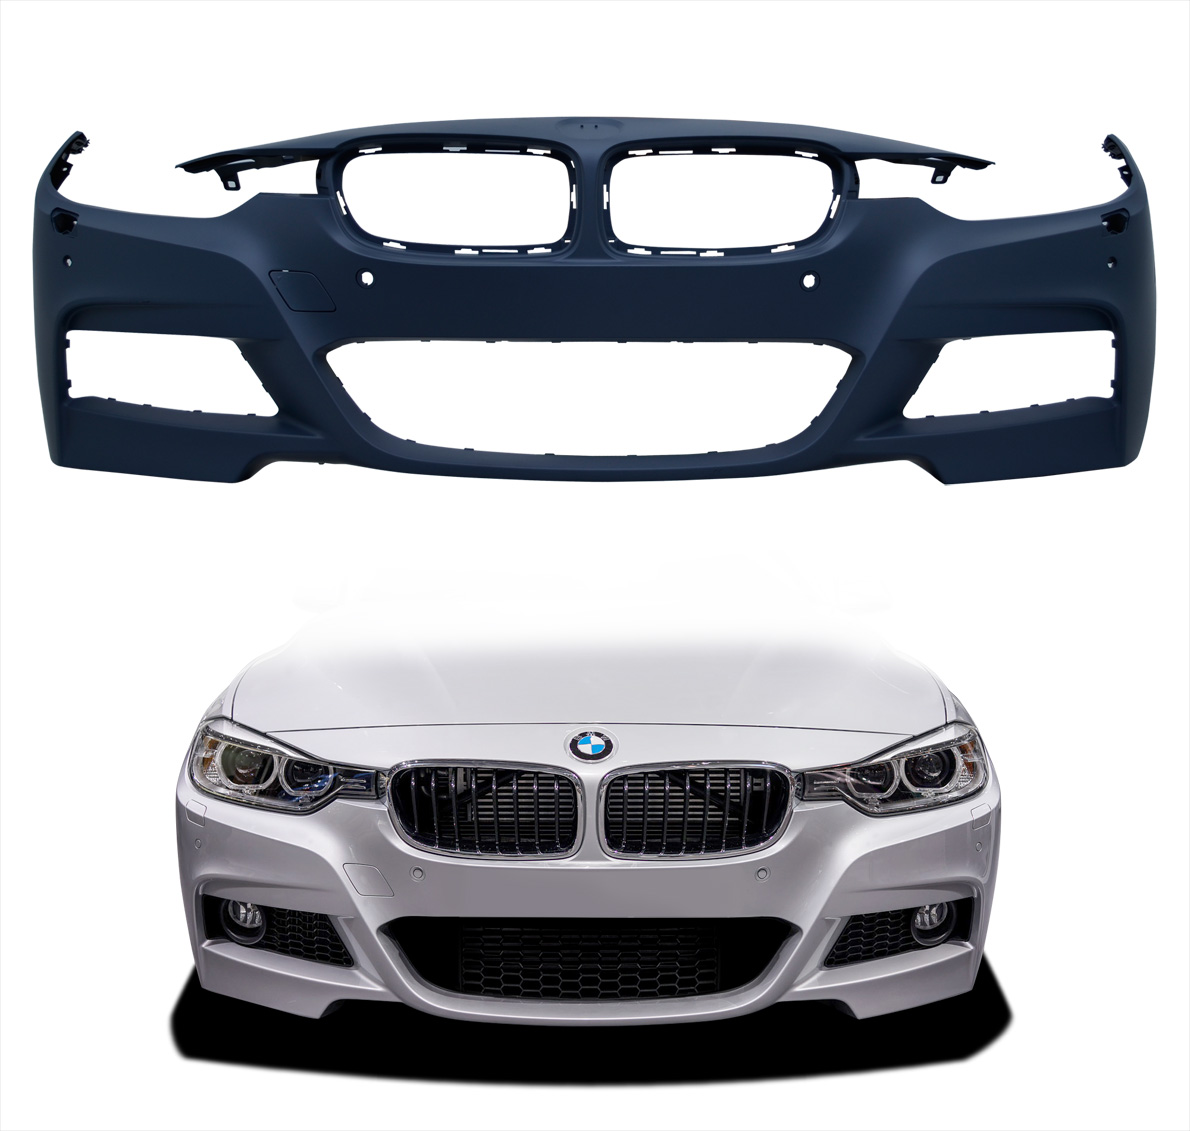 Bmw 1 Series M Sport 12-15 Rear Bumper With Pdc